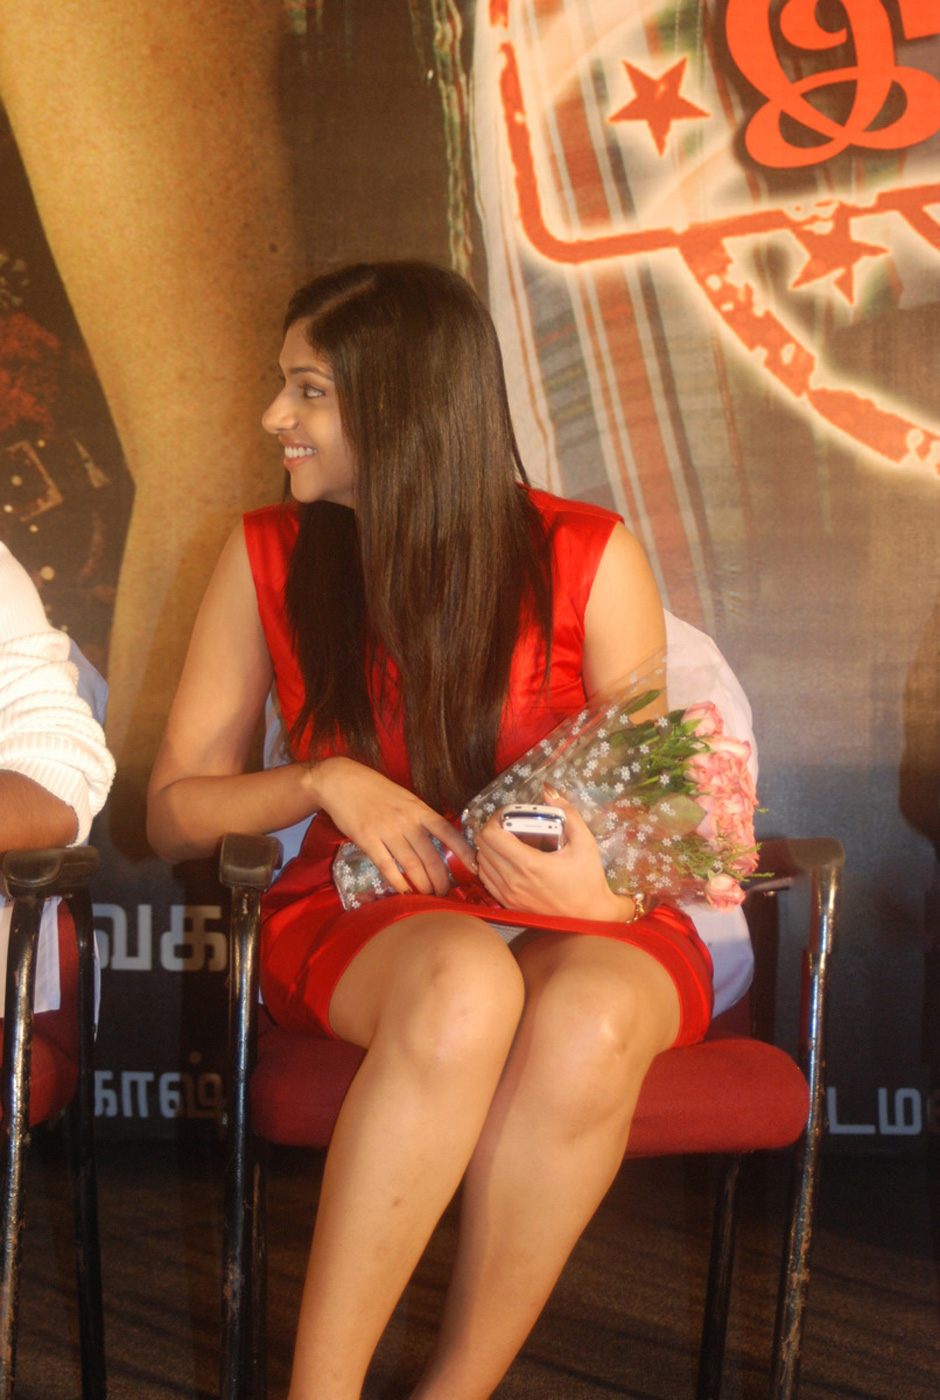 Lakshmi Nair Showing Her Underwear, Thighs and Giving Big Smile In The Audio Launch Event